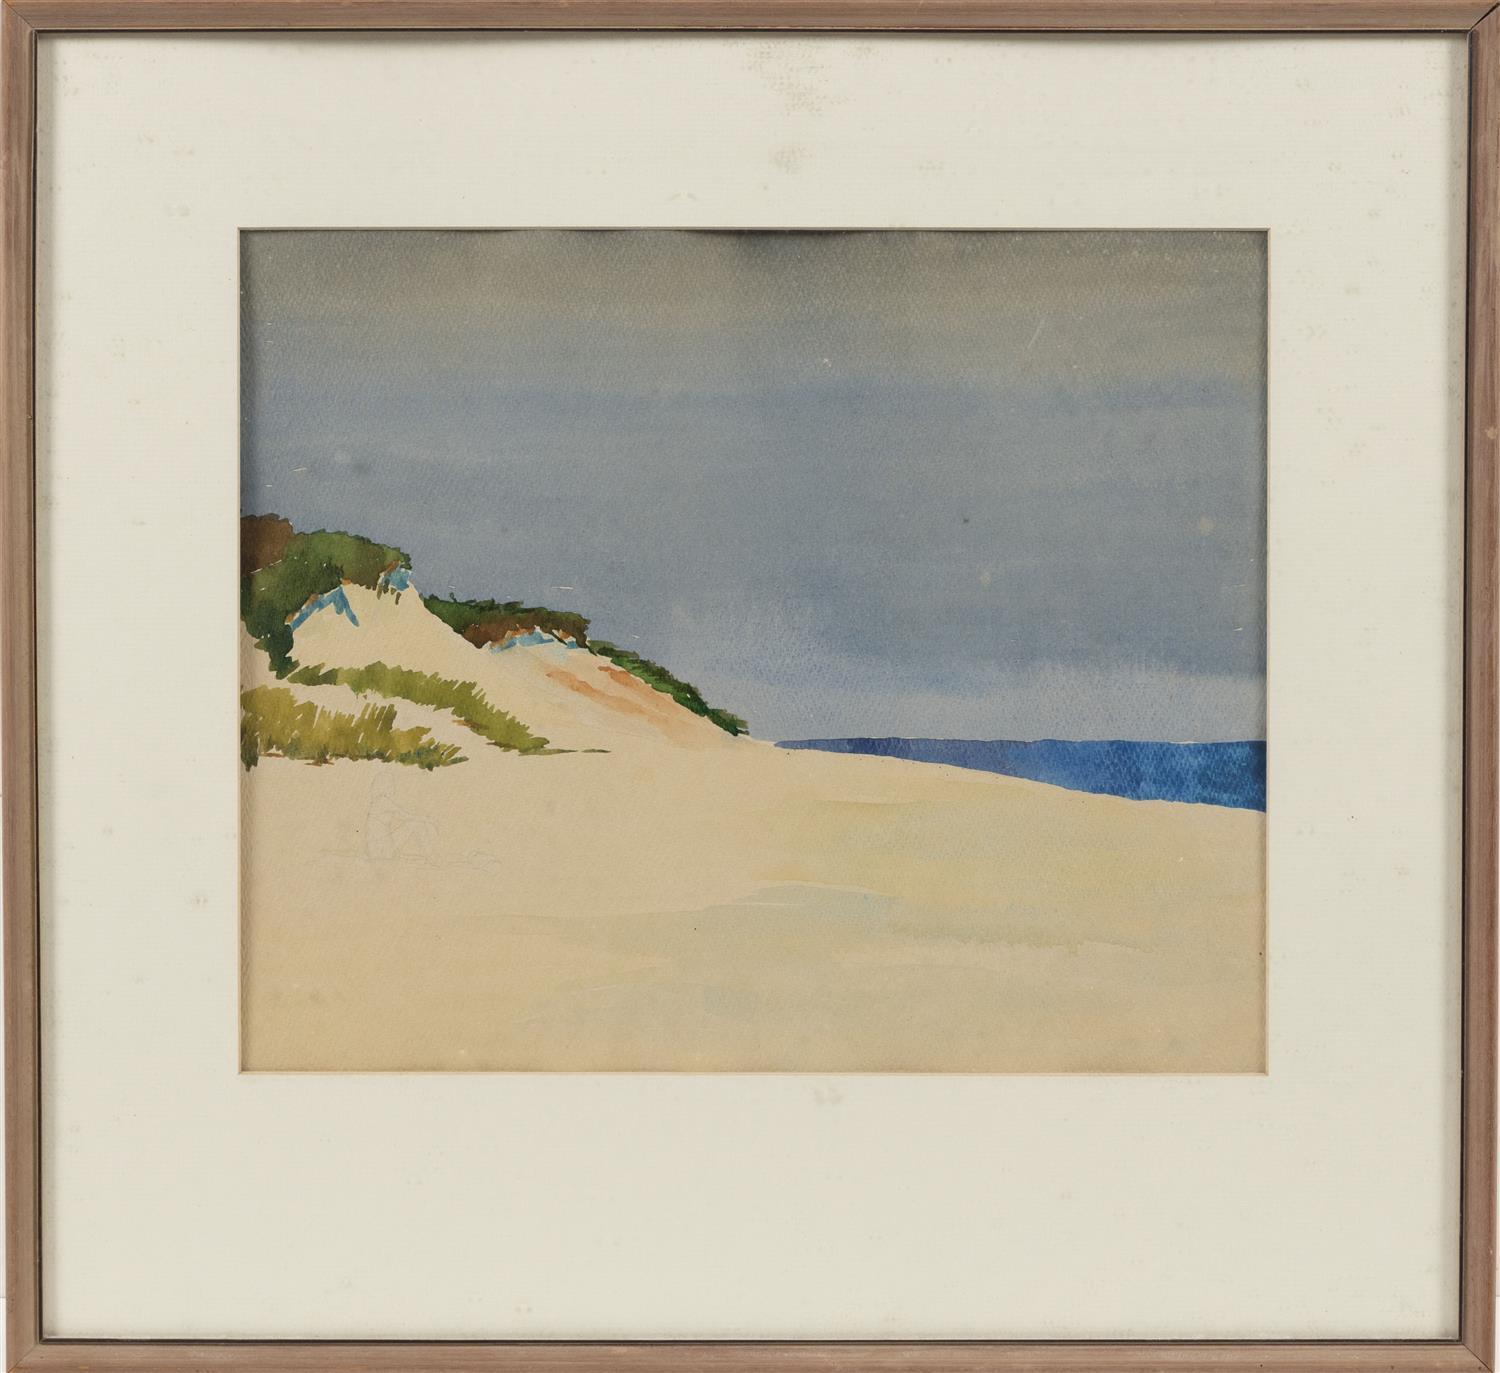 "WATERCOLOR OF A DUNE SCENE A figure penciled in lower left. Unsigned. 12.25"" x 15"" sight. Framed 20"" x 21.75""."